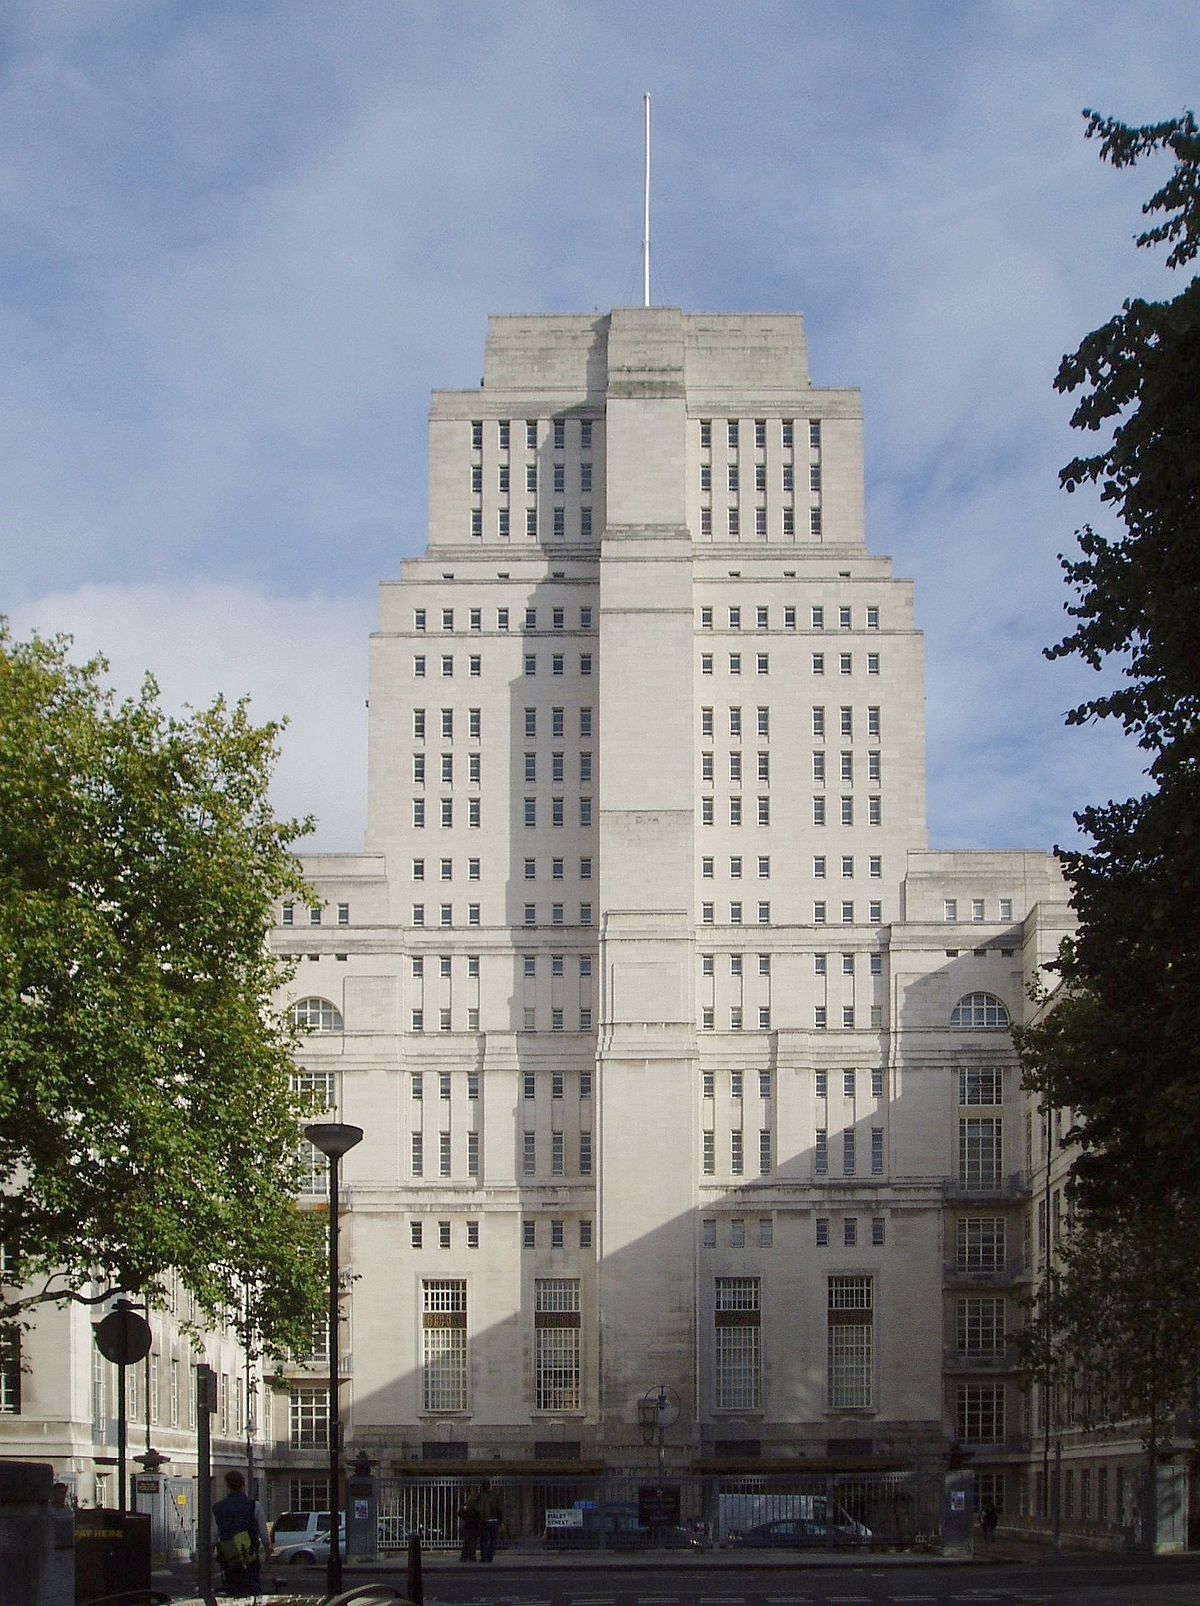 London Senate House